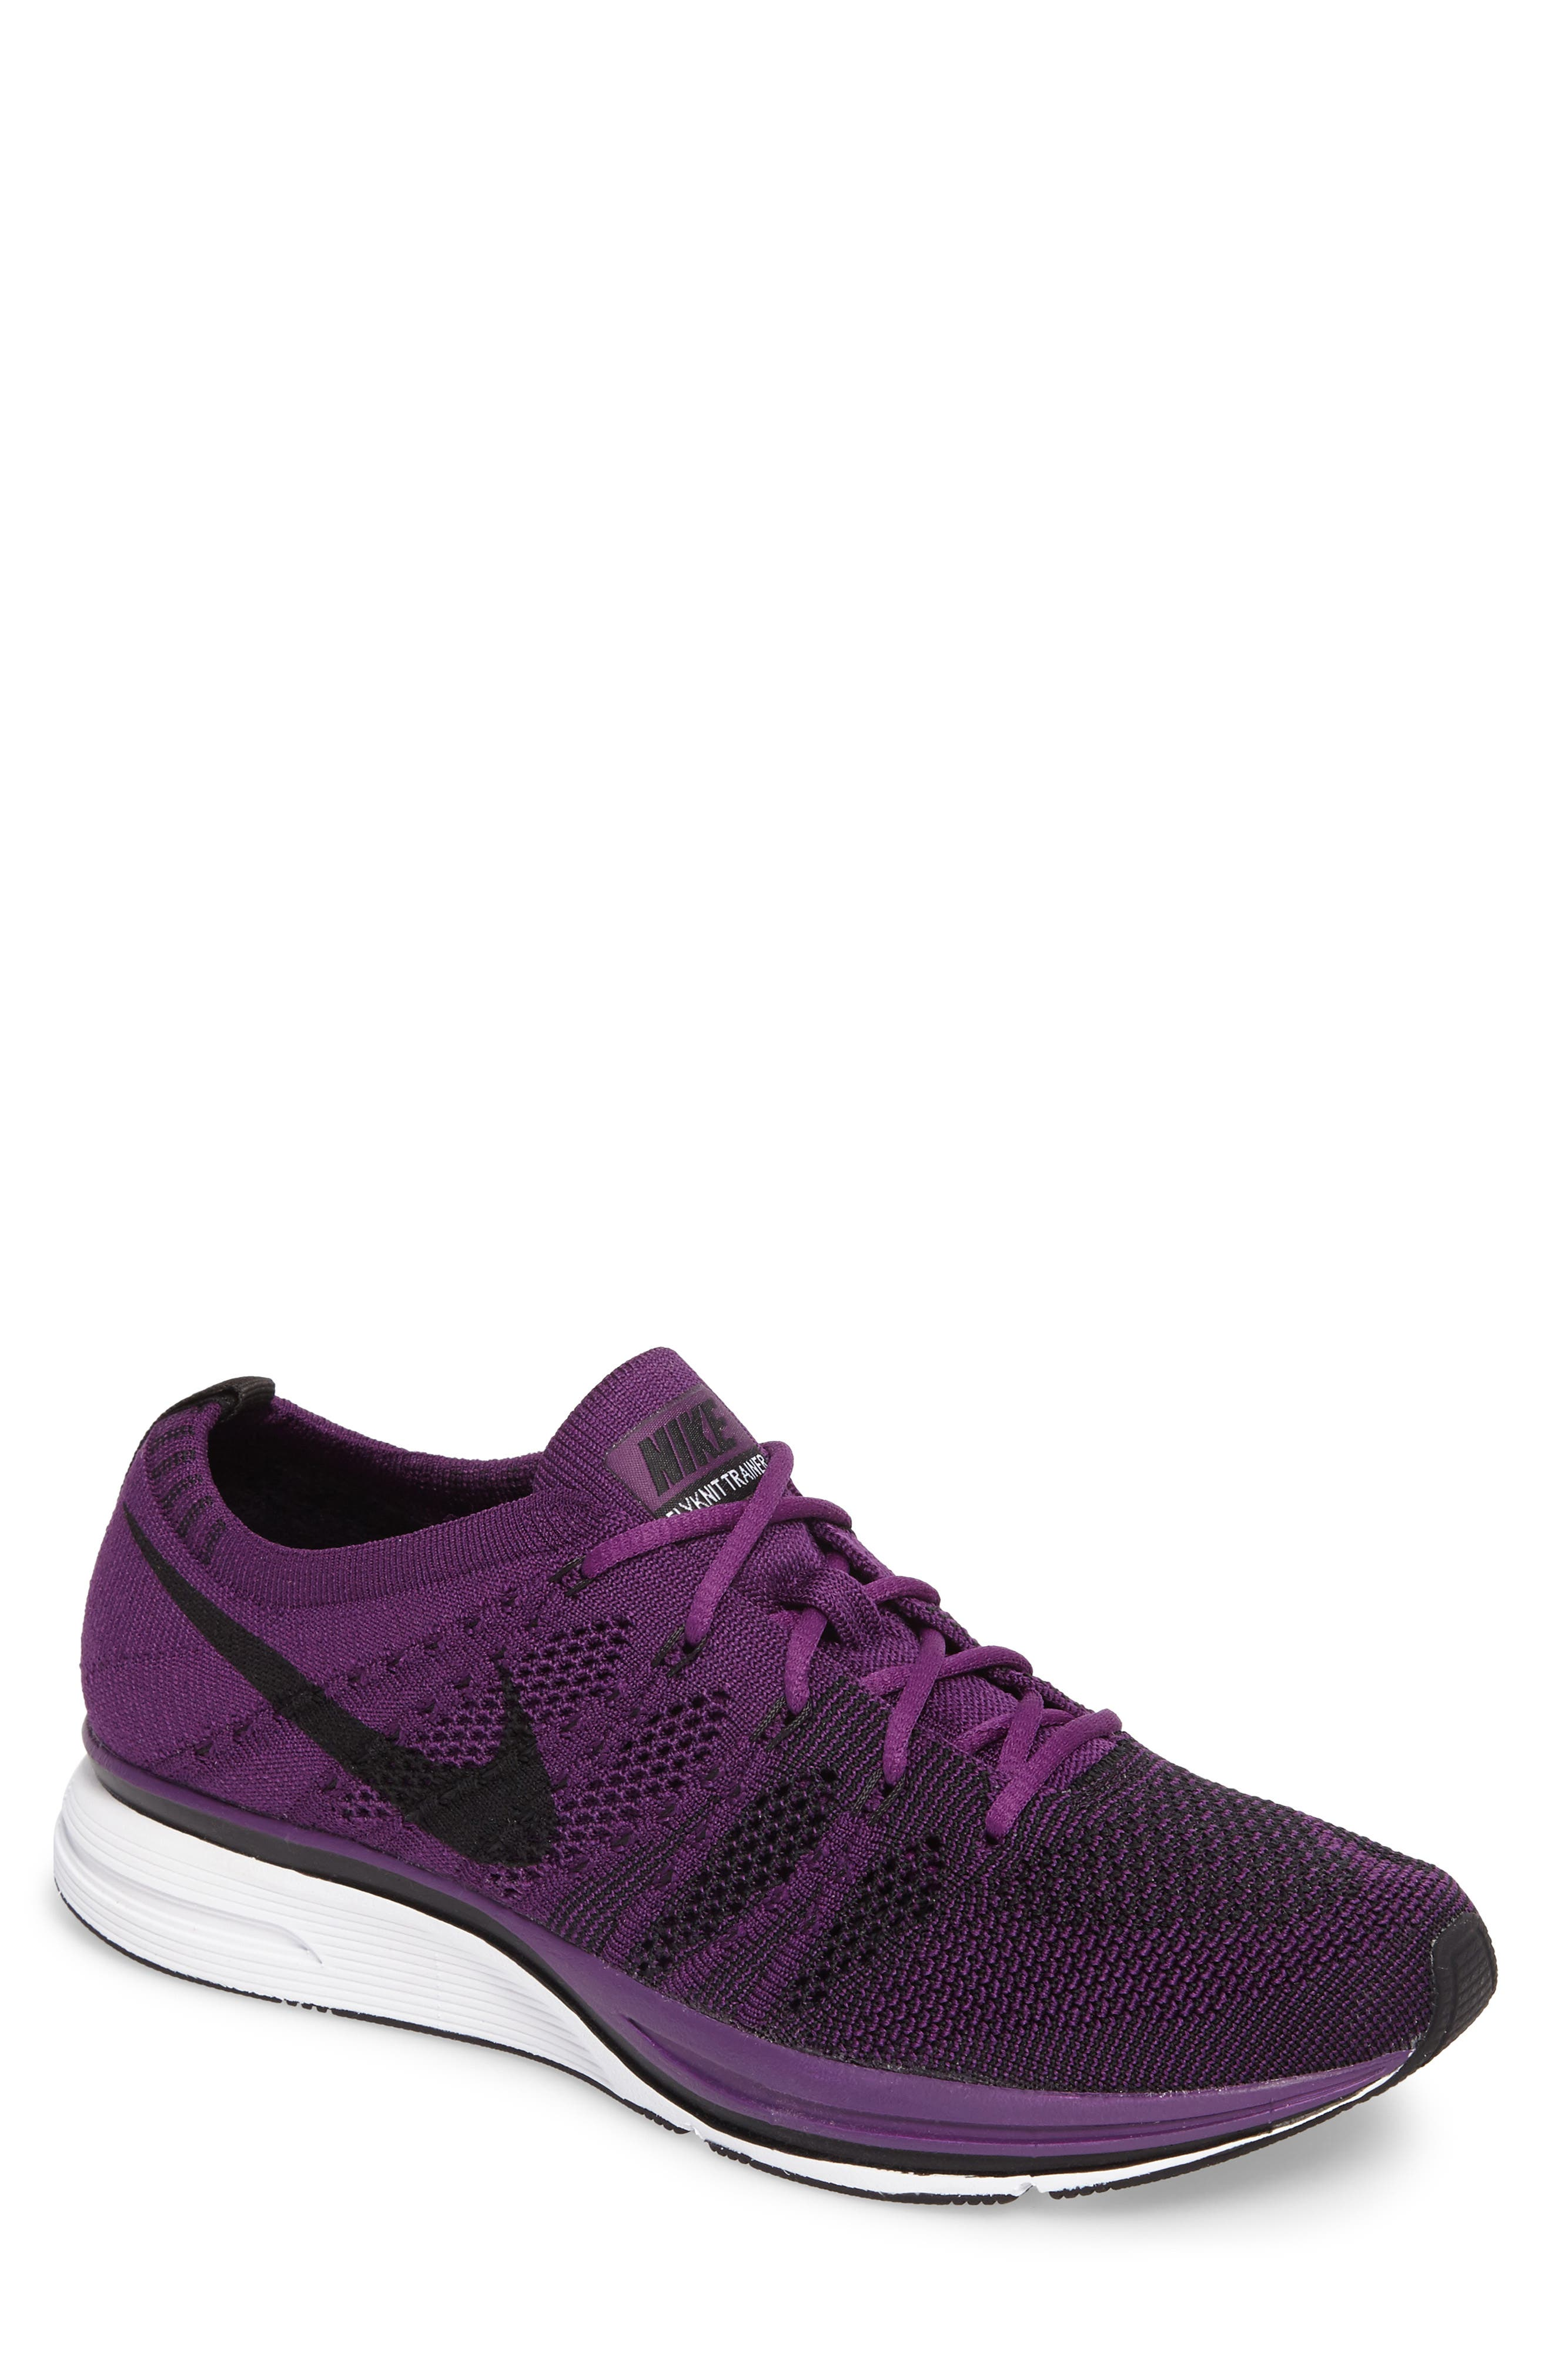 NikeLab Flyknit Trainer Sneaker,                             Main thumbnail 1, color,                             NIGHT PURPLE/ BLACK/ WHITE